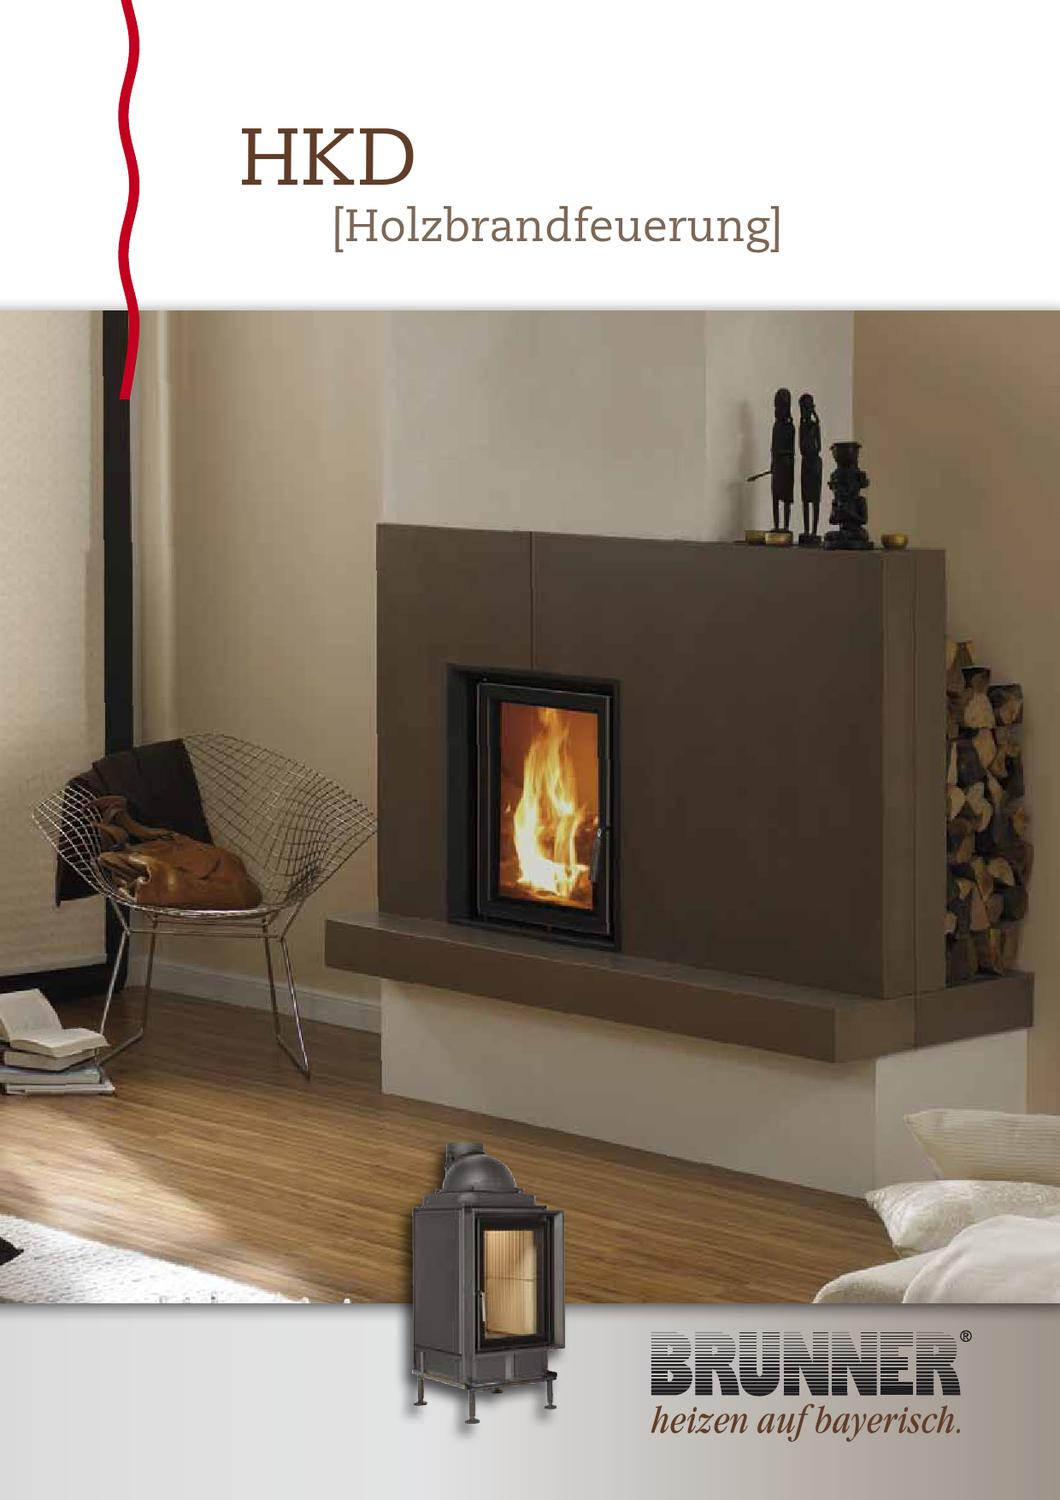 brunner hkd kachelofeneins tze by stude feuerungstechnik gmbh issuu. Black Bedroom Furniture Sets. Home Design Ideas